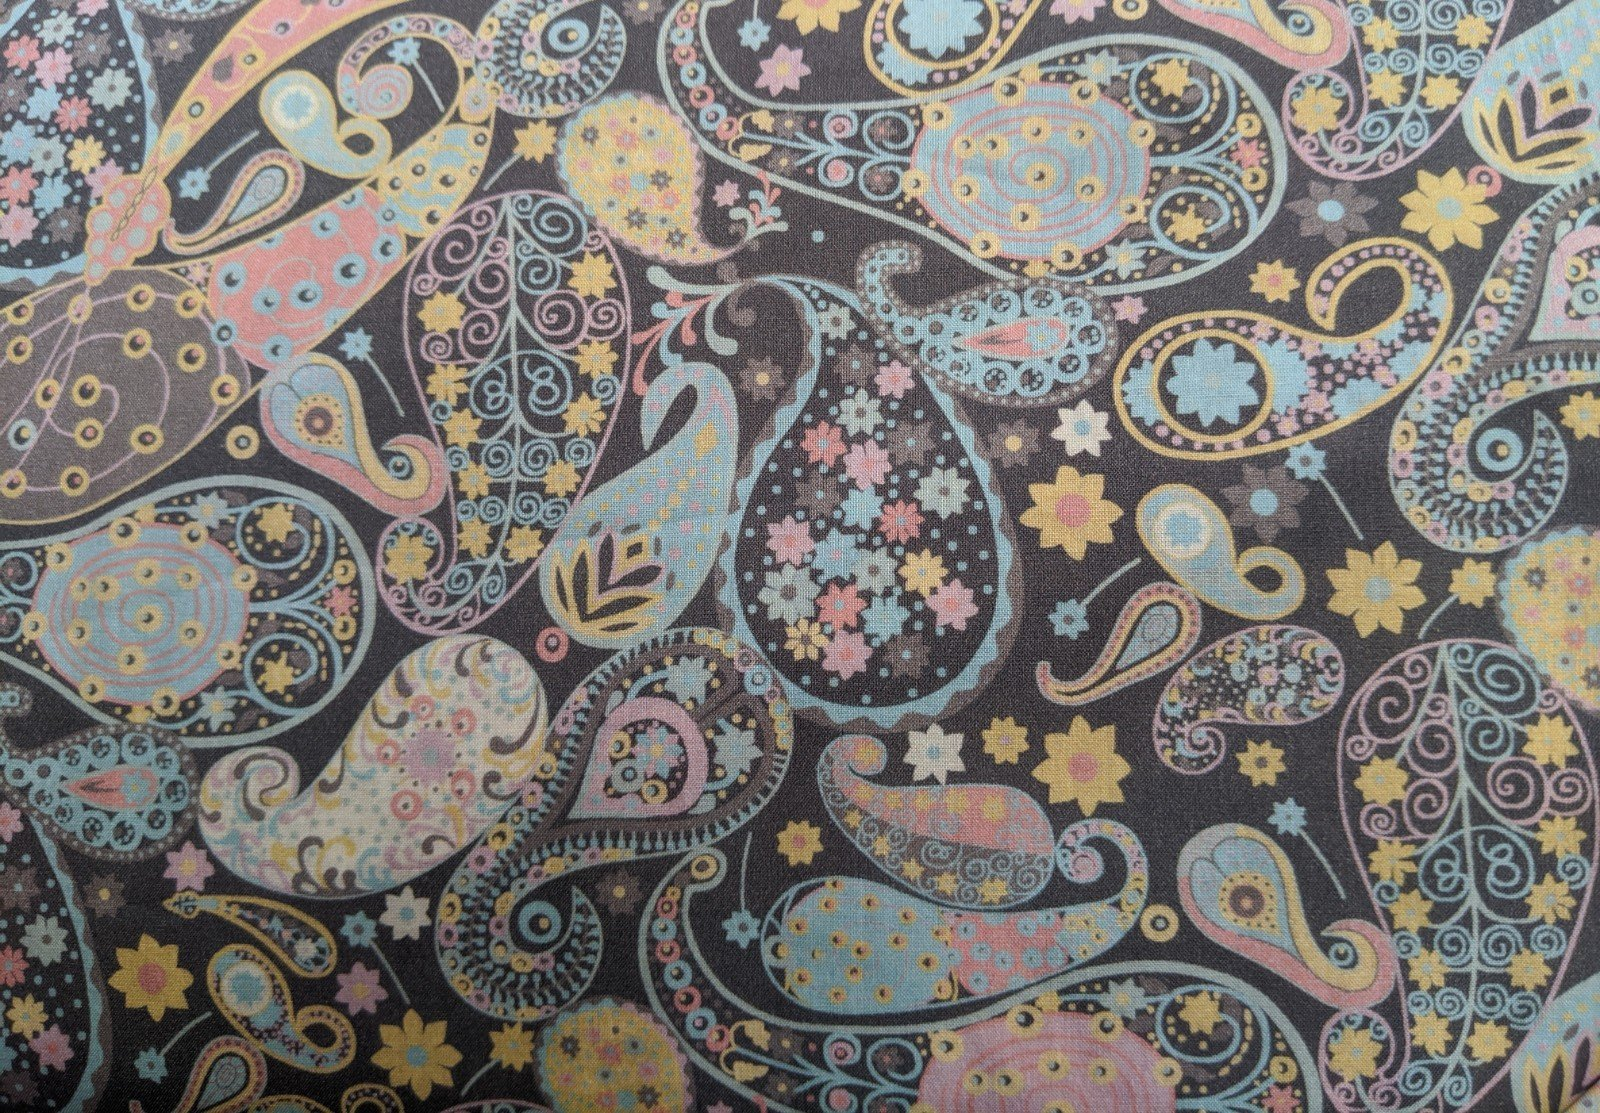 Liberty of London Cotton Lawn - Pastel Paisley